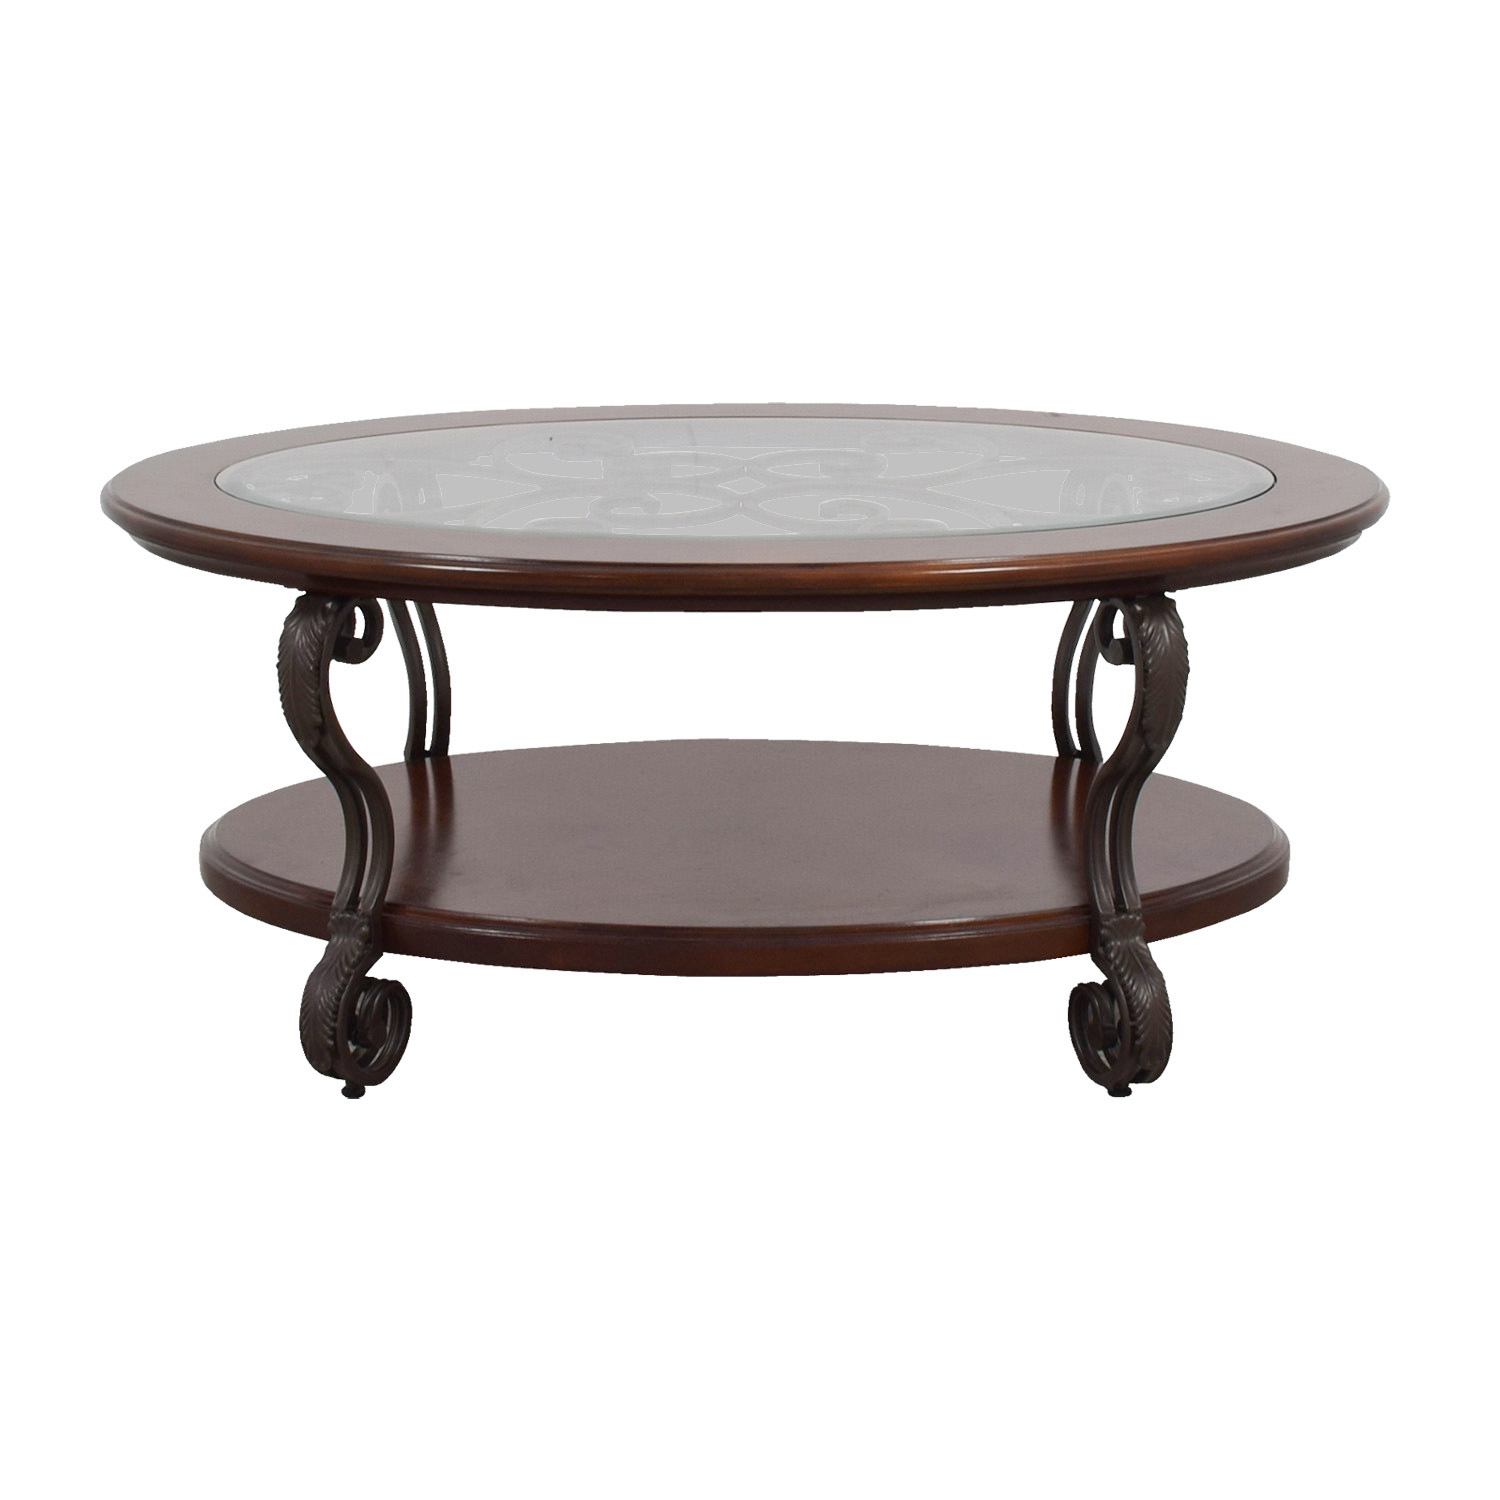 buy Ashley Furniture Ashley Furniture Oval Glass Wood and Metal Scroll Coffee Table online